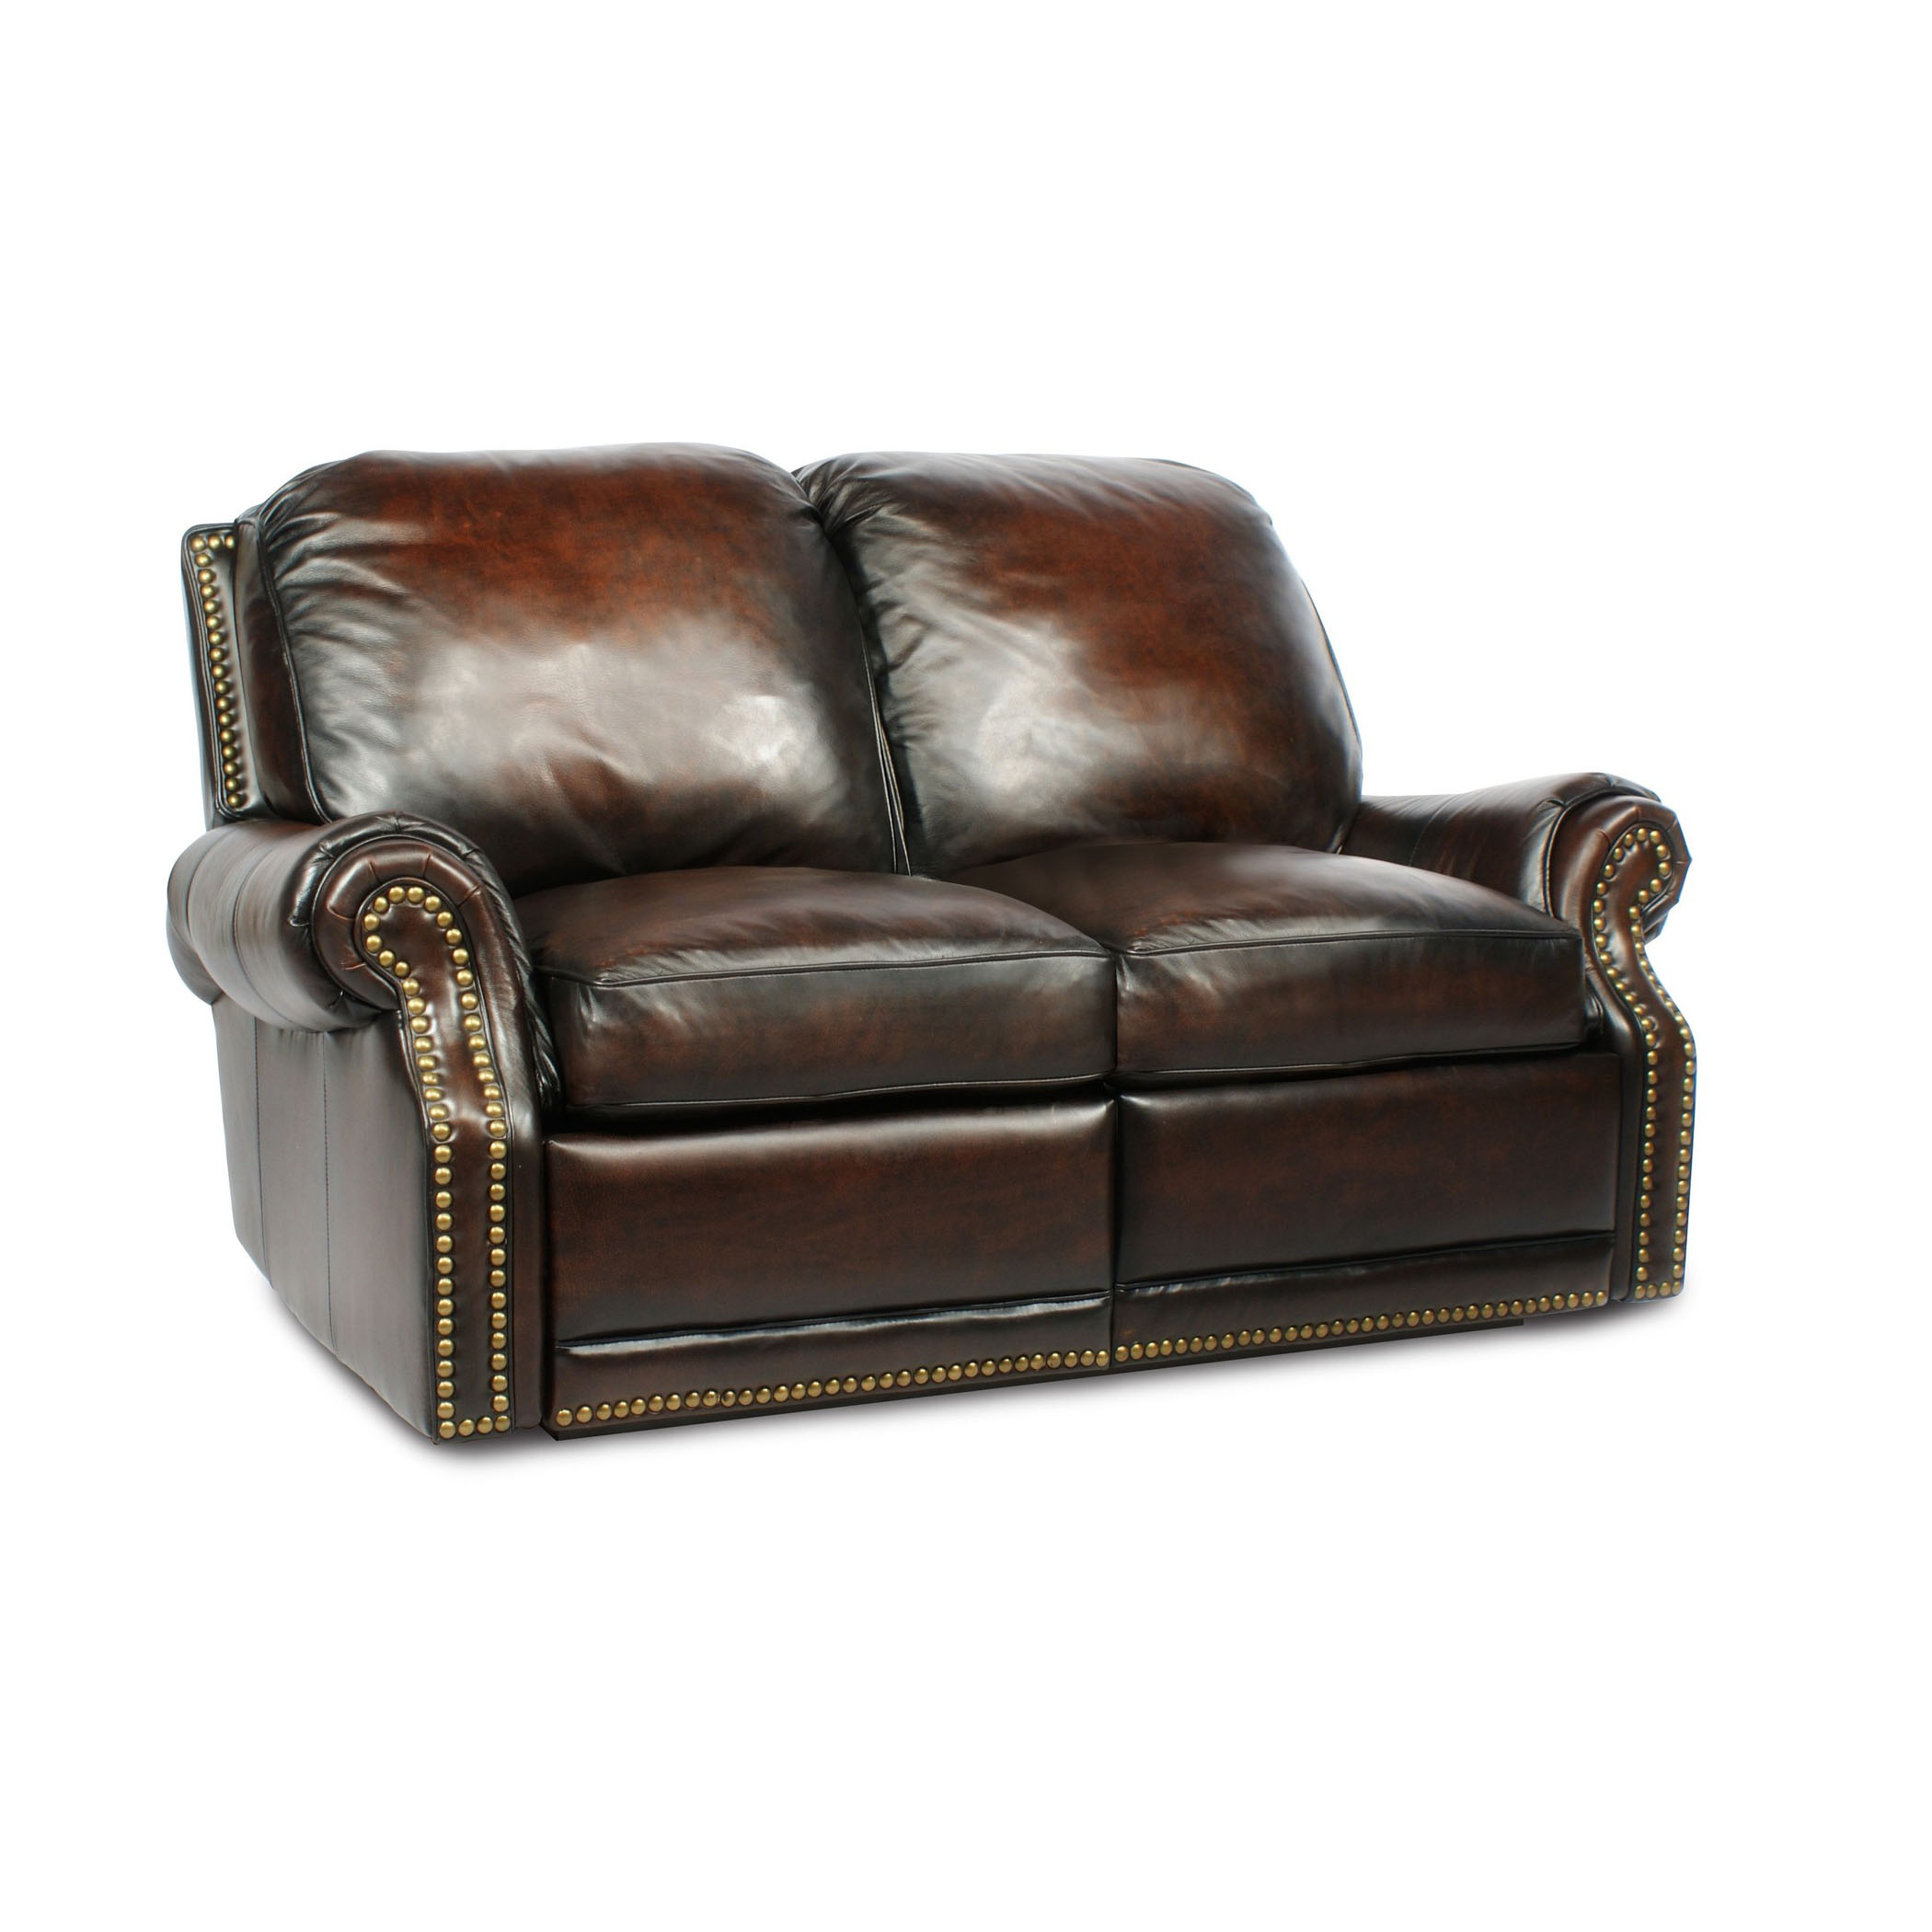 Barcalounger premier ii leather 2 seat loveseat sofa for Couch and loveseat